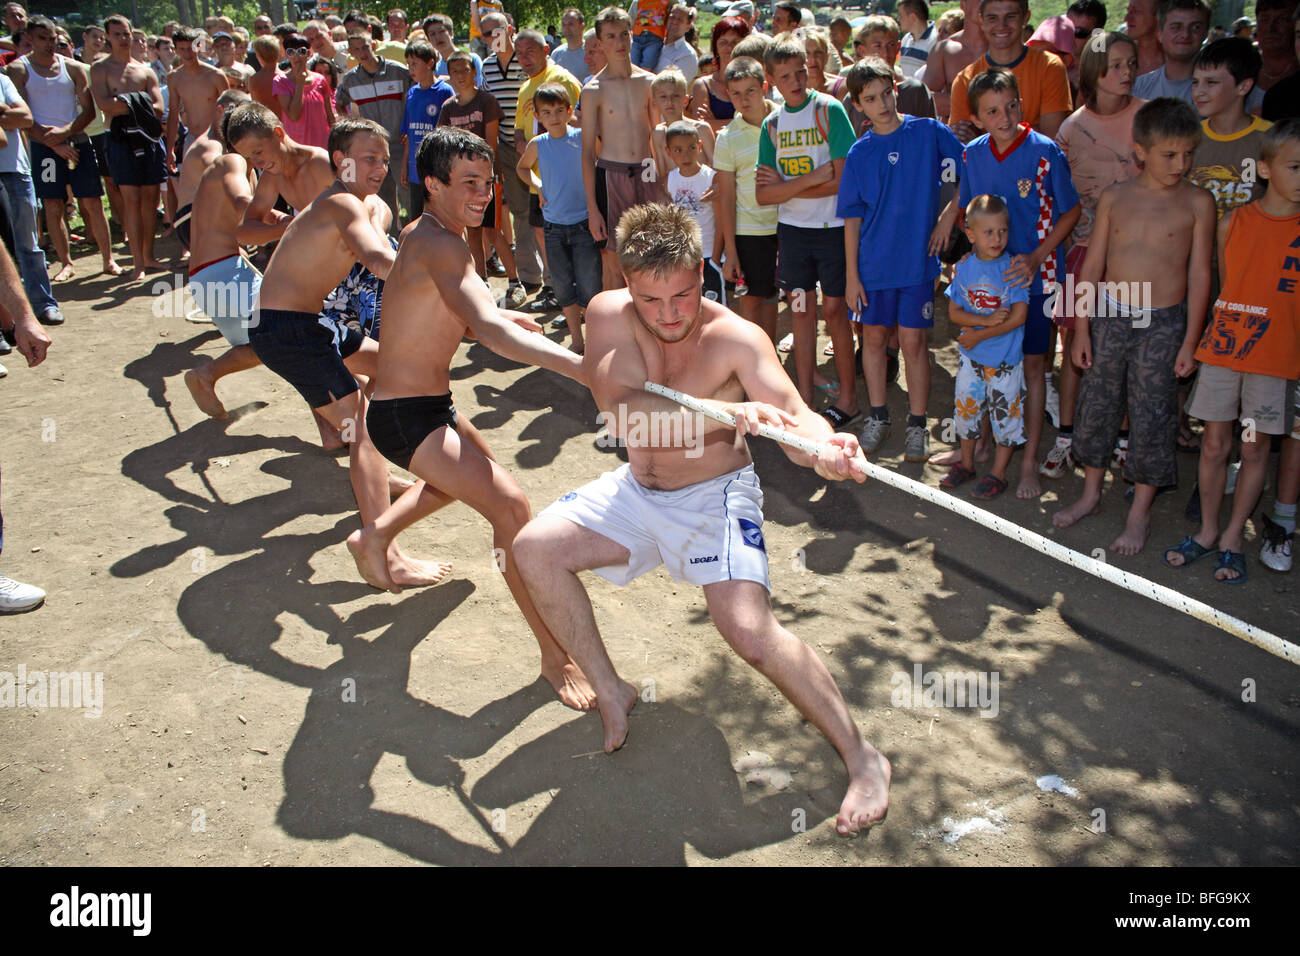 A team of boys pulls rope on a beach in a tug of war watched by crowd of spectators. - Stock Image